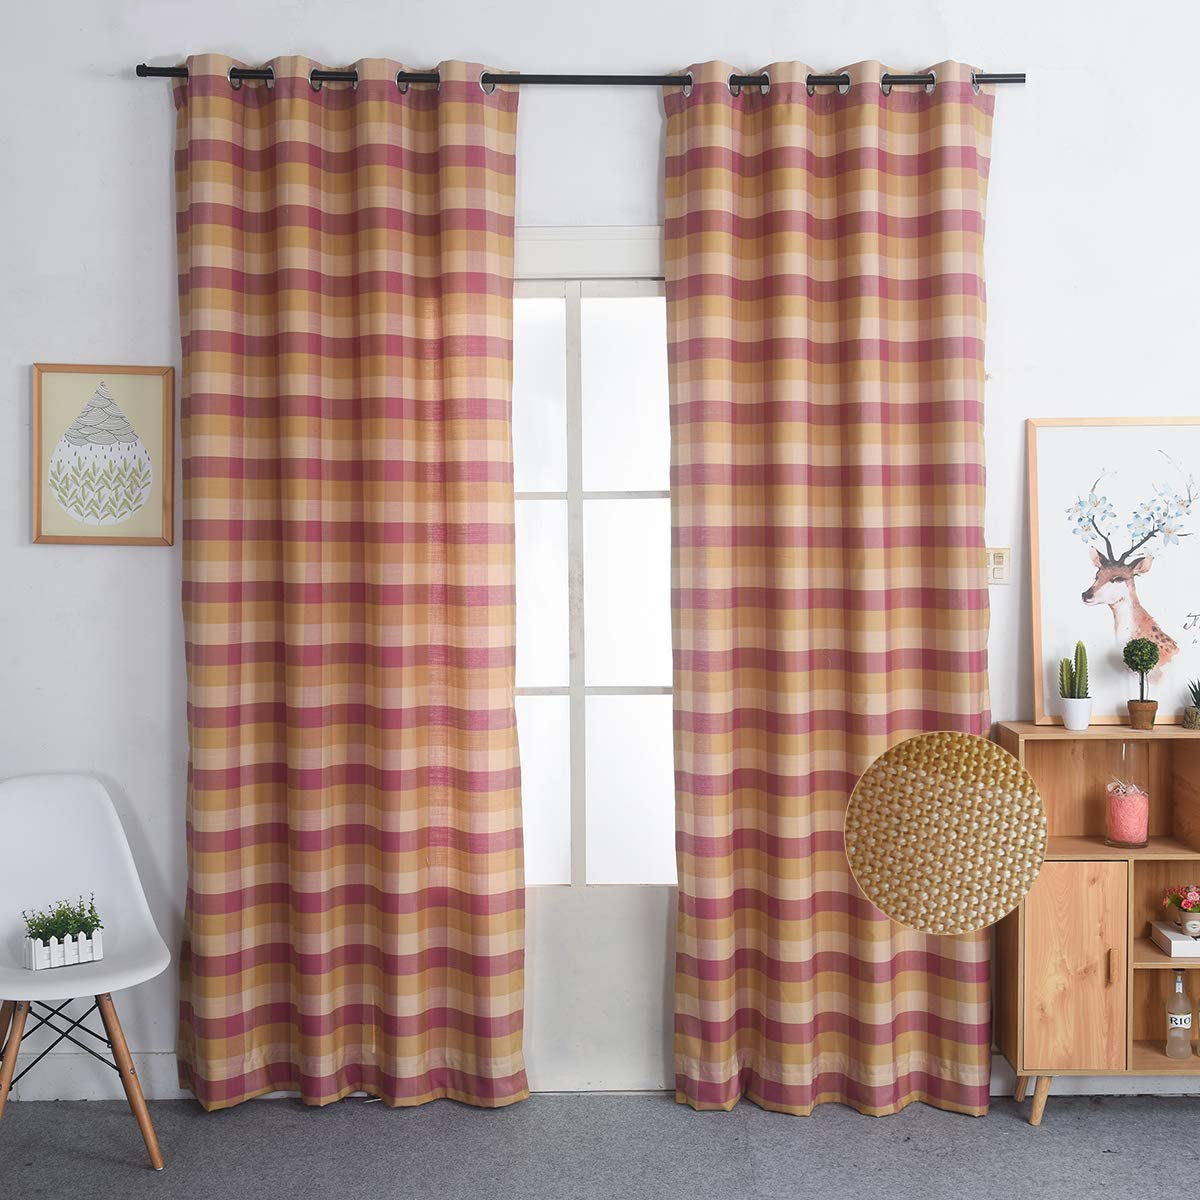 Nauxcen 100 Cotton Plaid Curtains 52 X 96 Inch 2 Panels Rust Pink Grommet Curtains for Bedroom Living Room